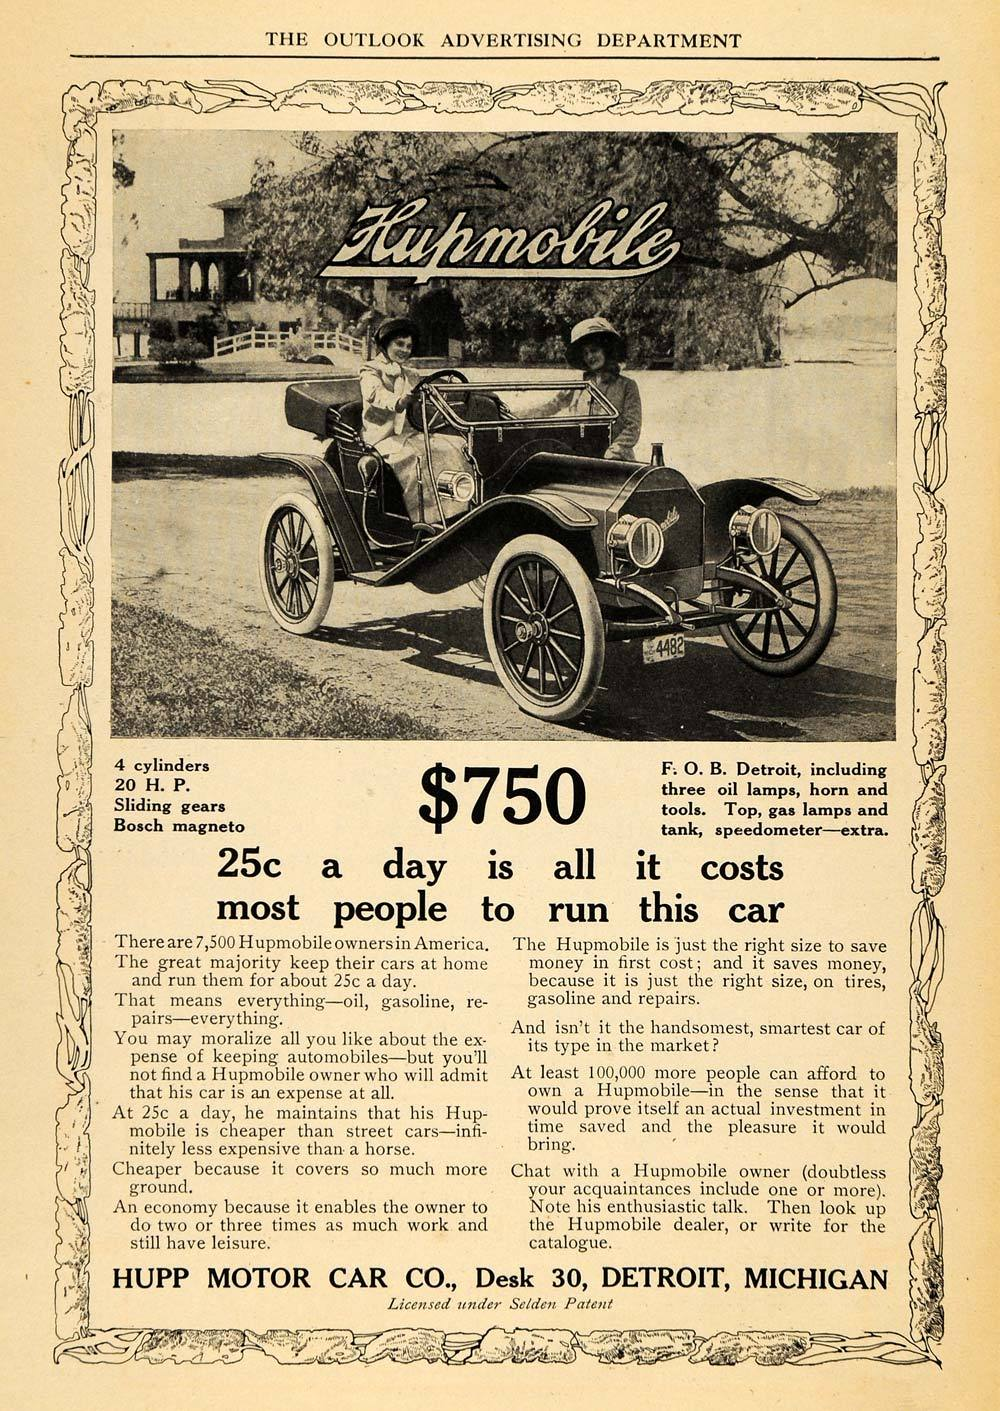 - Our 1909 Hupmobile is currently in storage to make room for more fascinating vehicles.